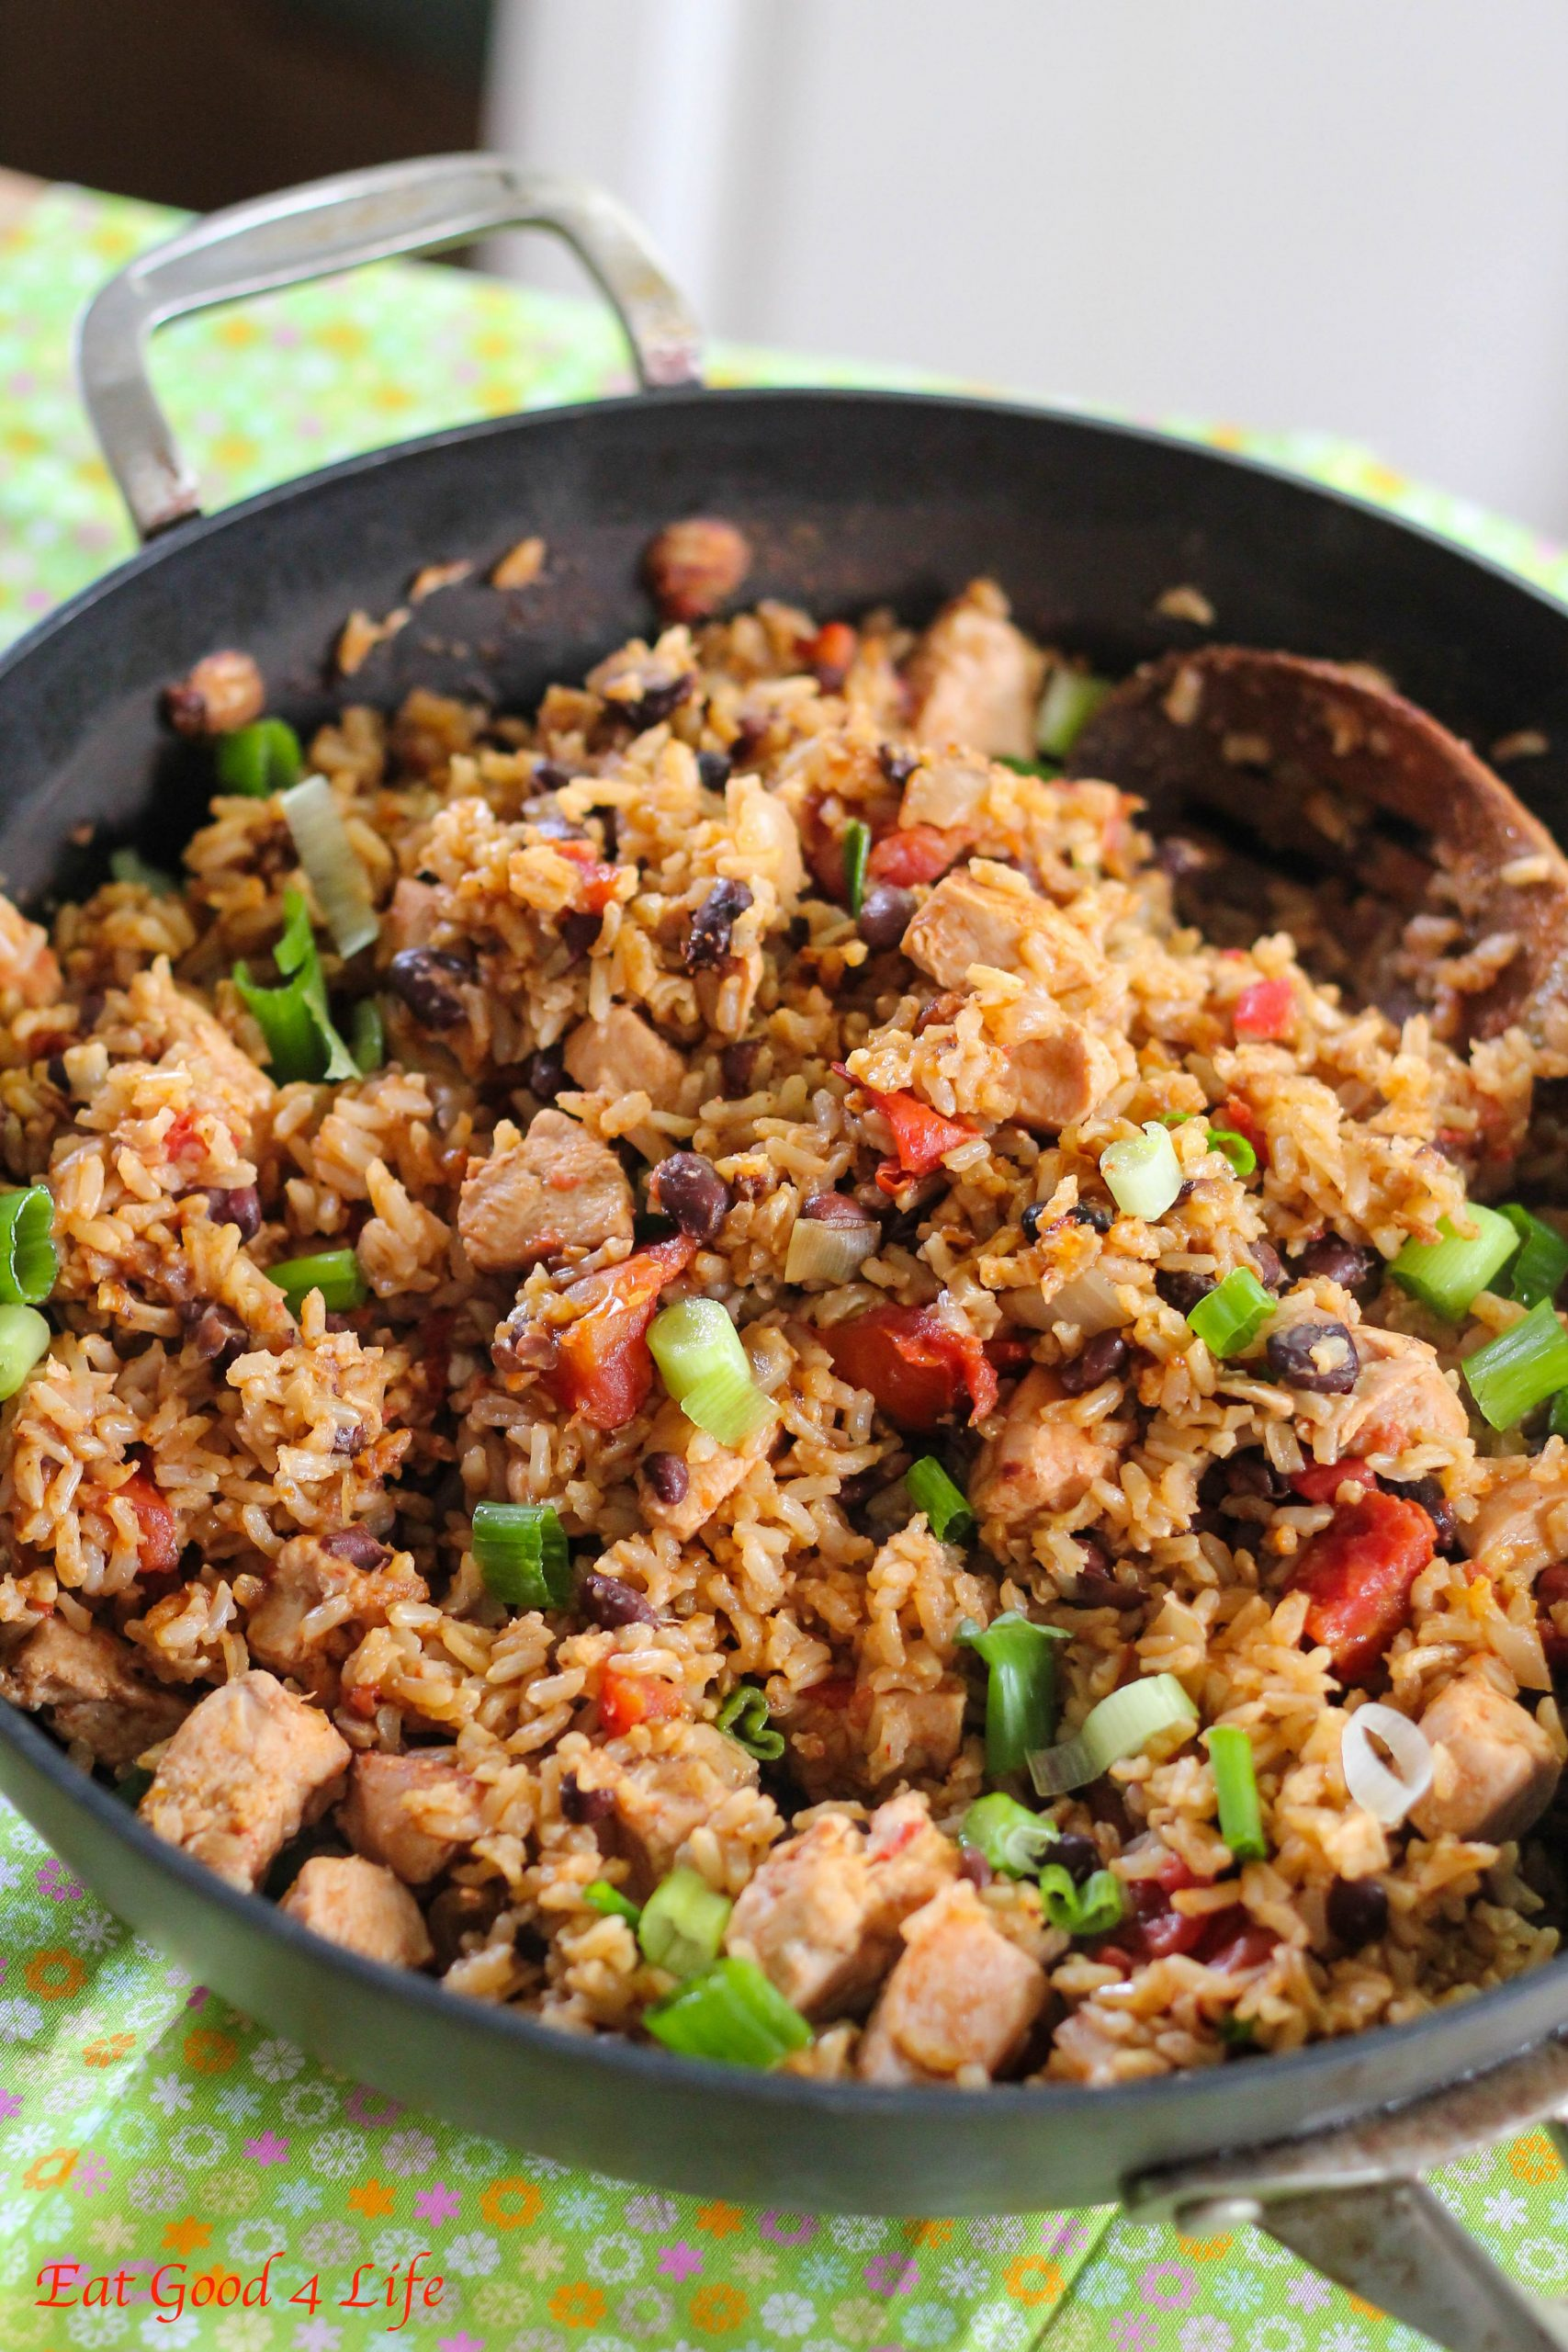 No-fuss black beans, chicken and rice - Recipes Rice Beans